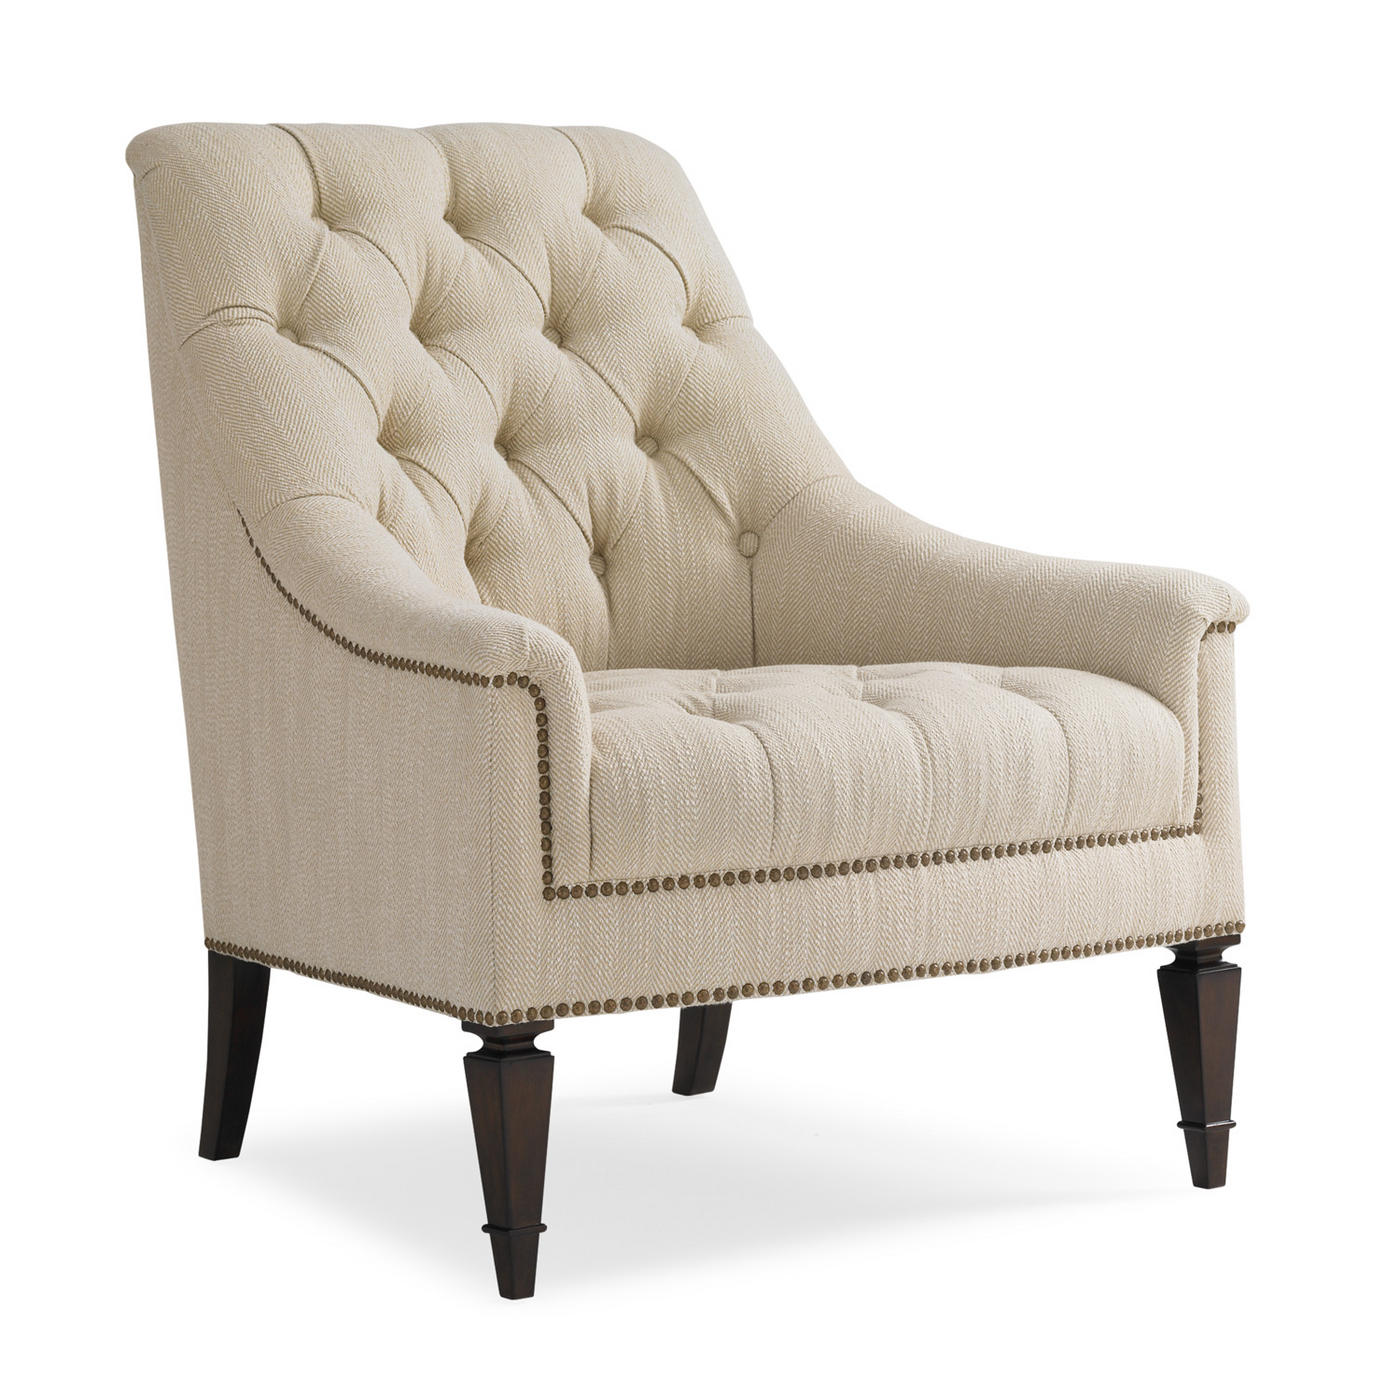 Schnadig International Classic Elegance Tufted Chair